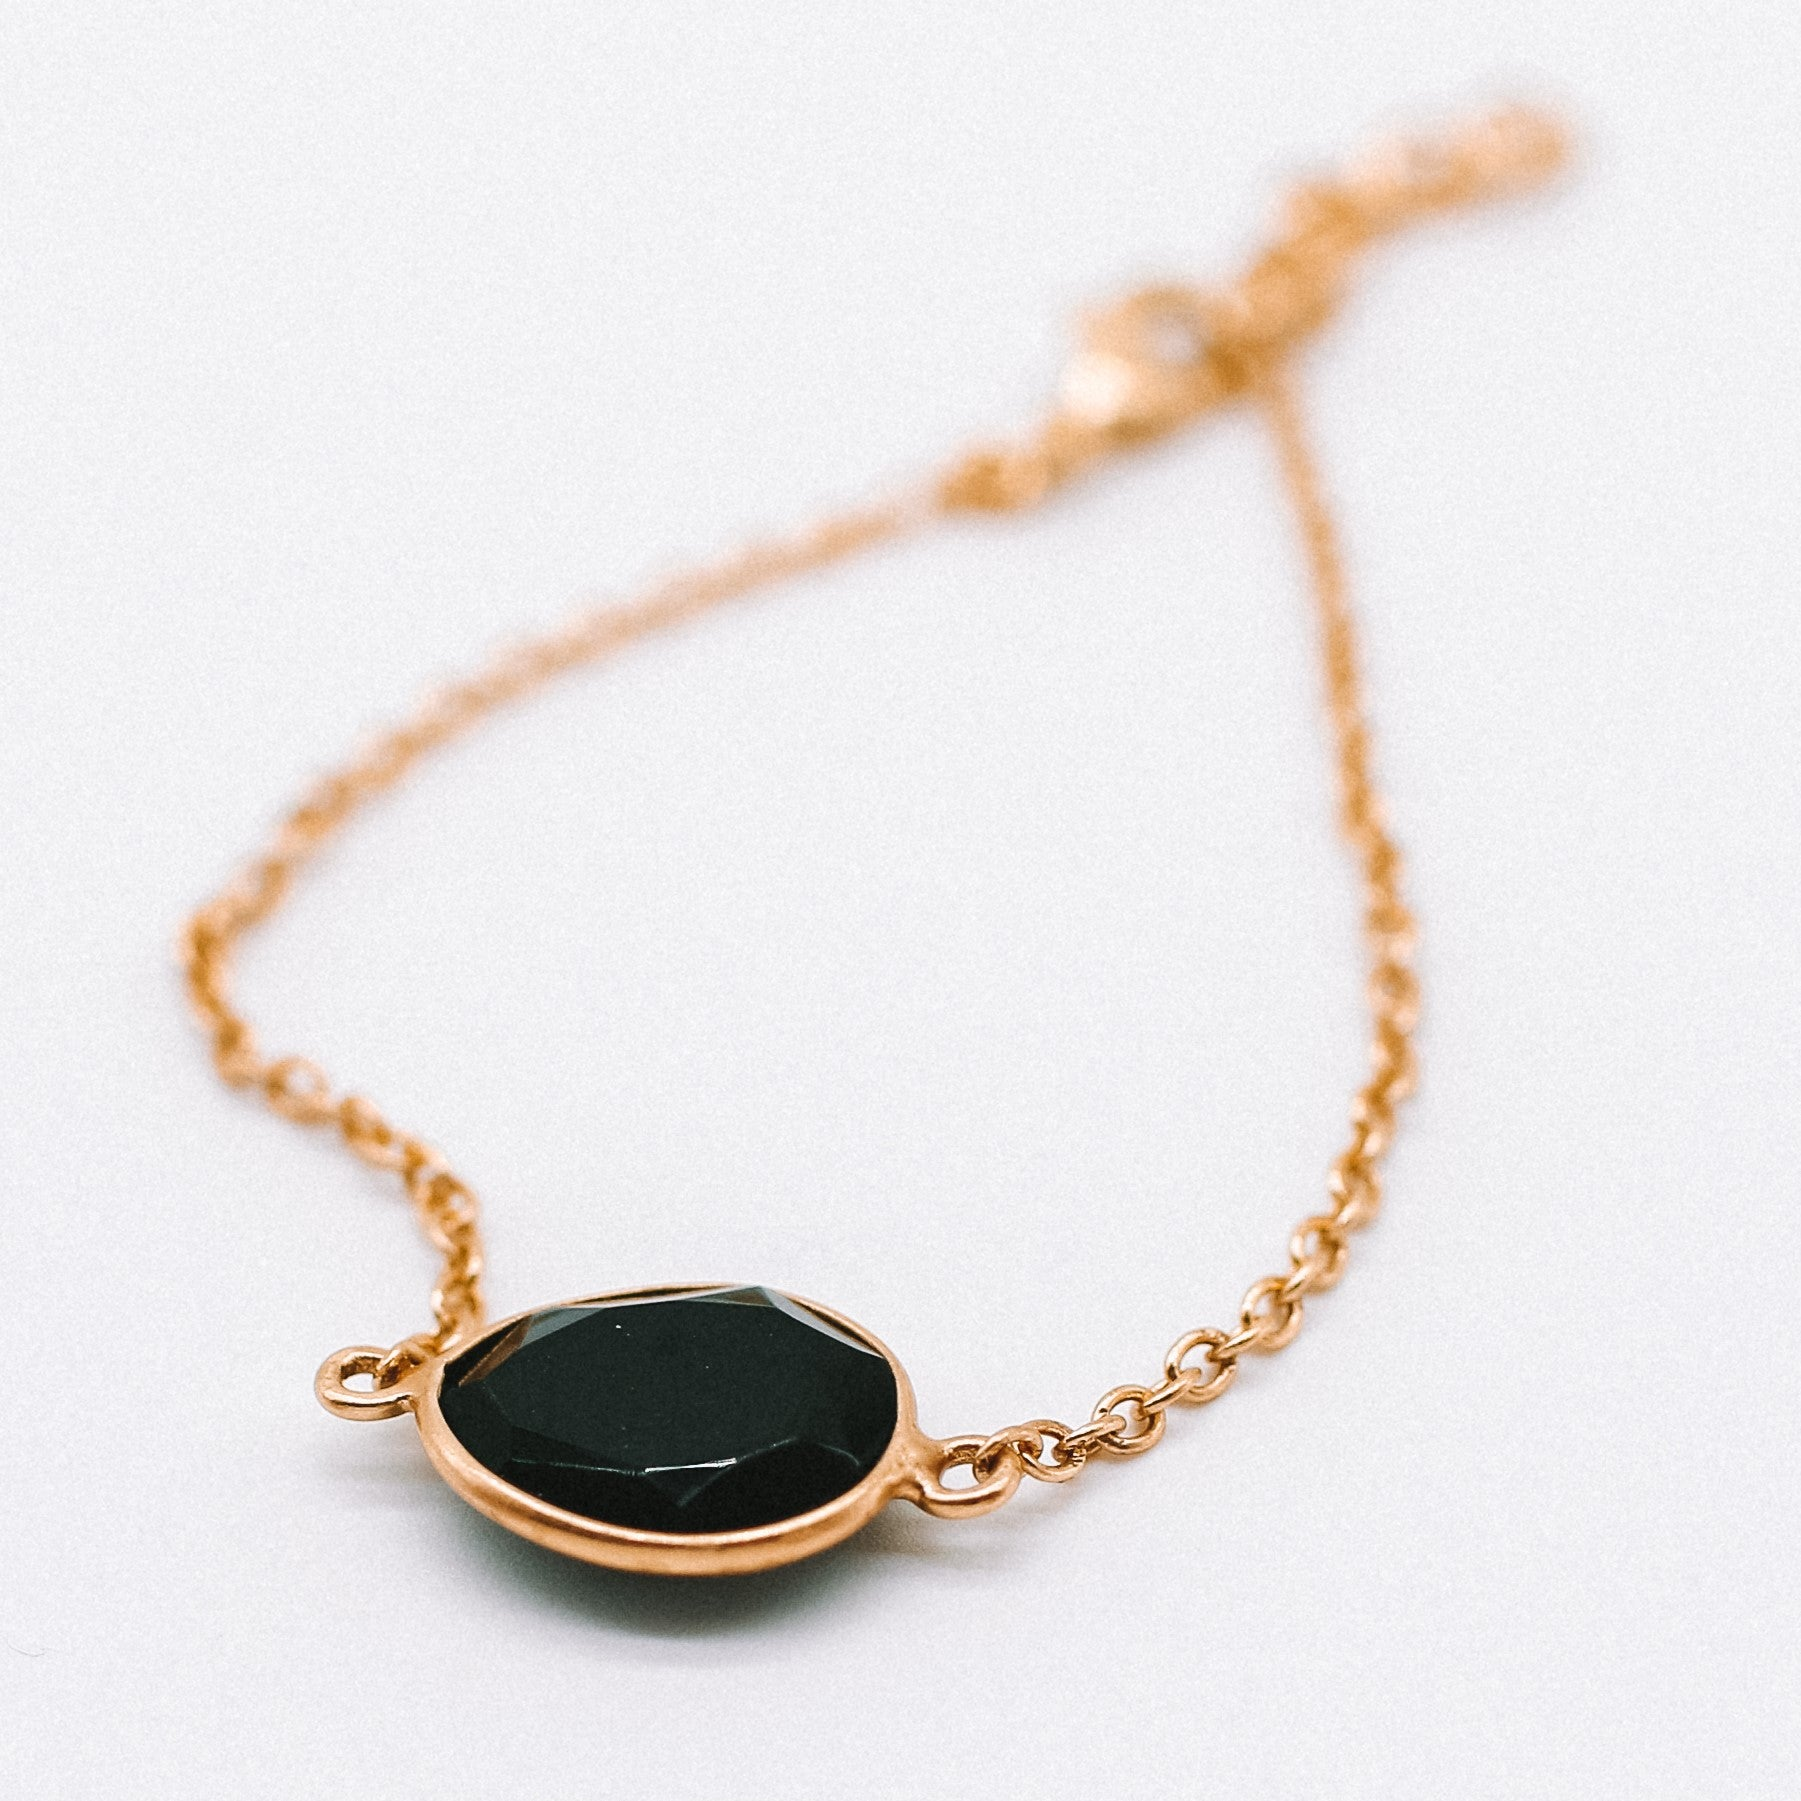 Hunter Bracelet - Black Onyx - Hand crafted gold plated Katy Valentine - Shop with Sparkle & The Sinner